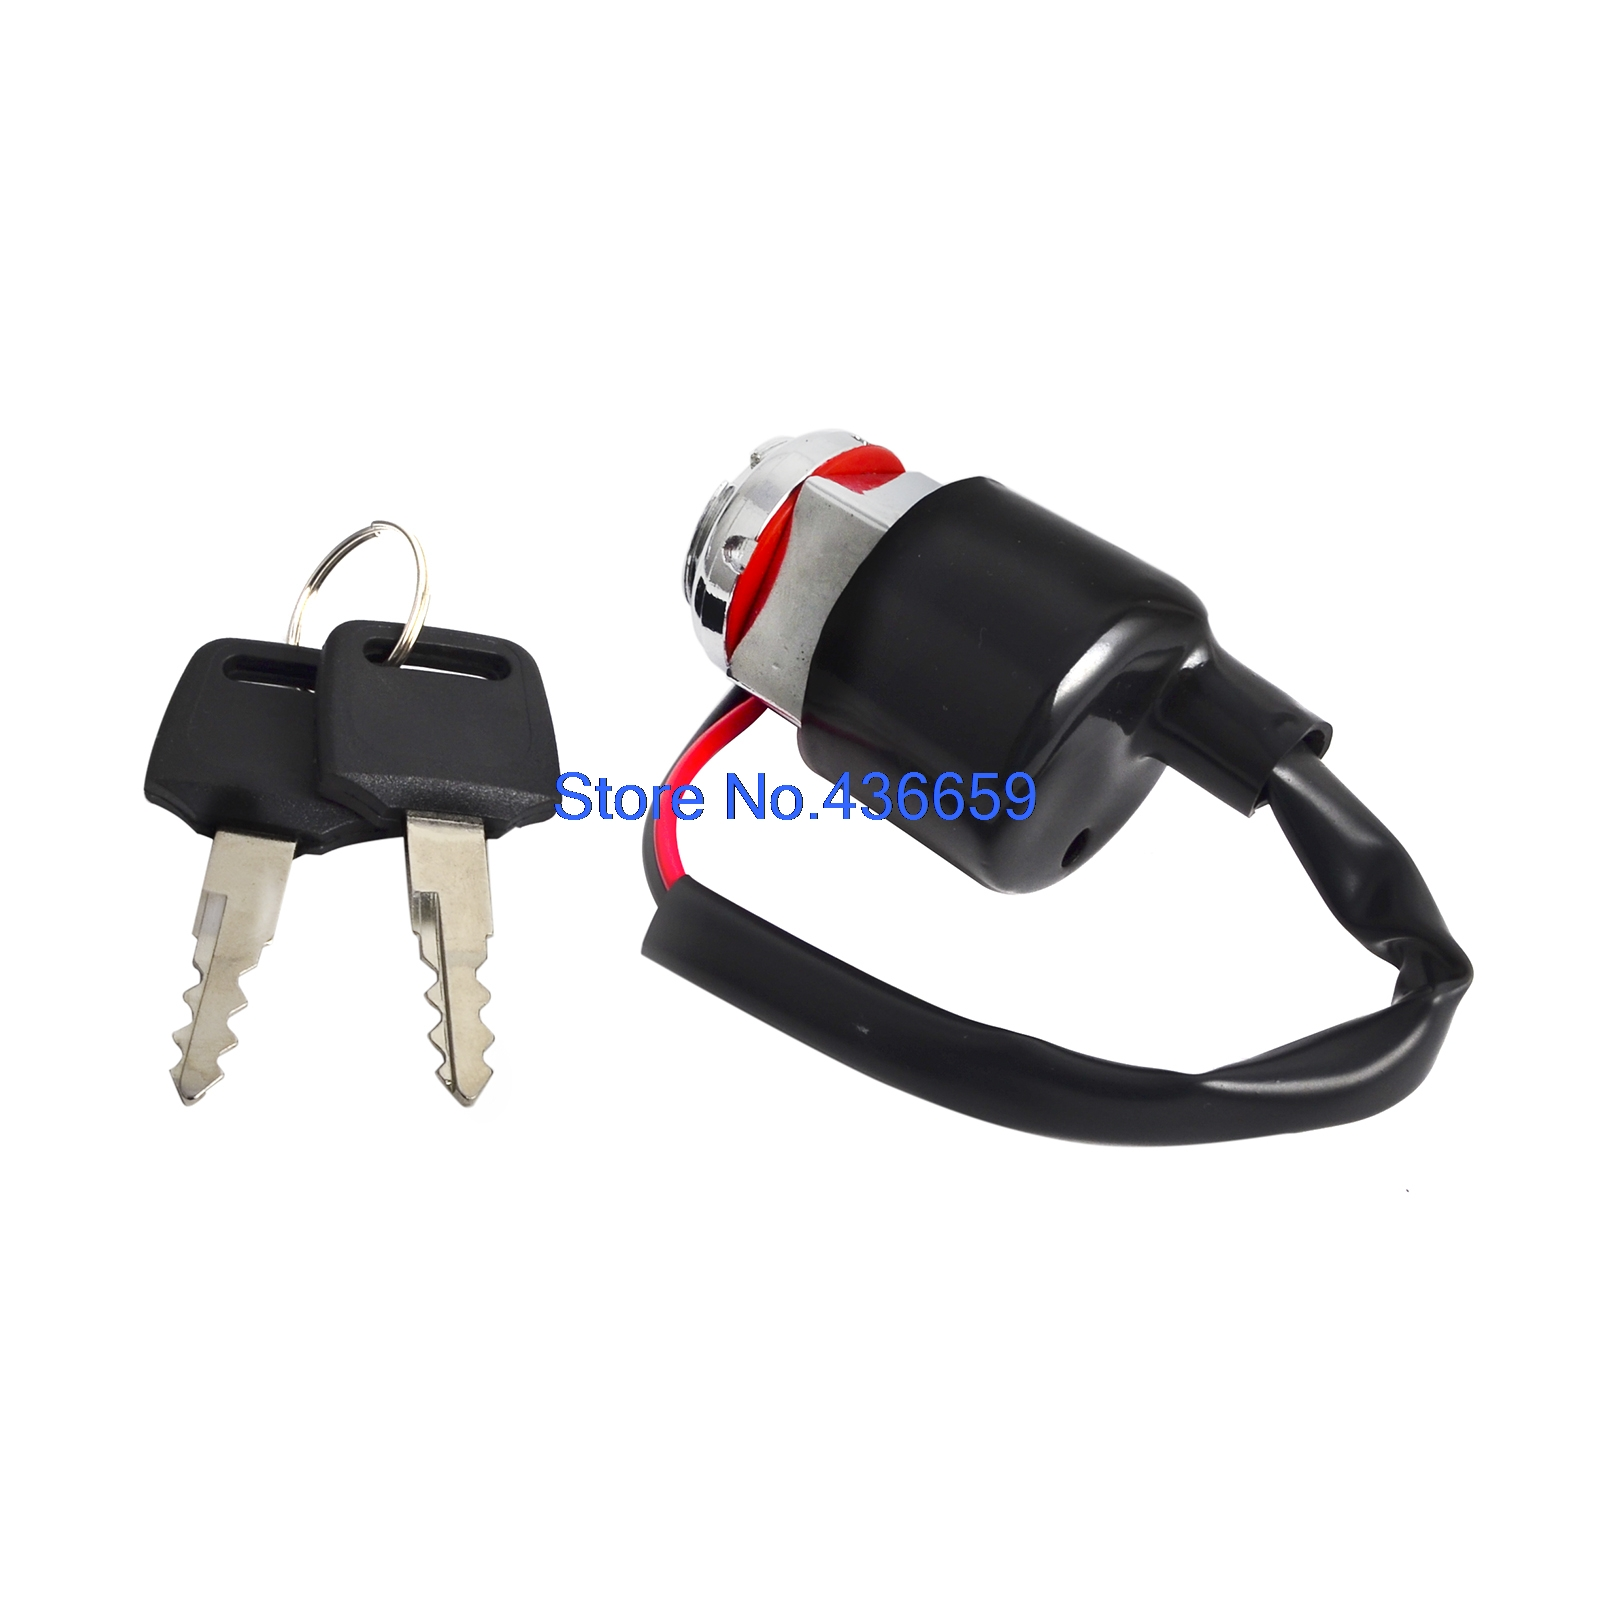 hight resolution of ignition switch with 2 keys 2 wire for honda cb100 super sport 100 cb125 cl70 cl90